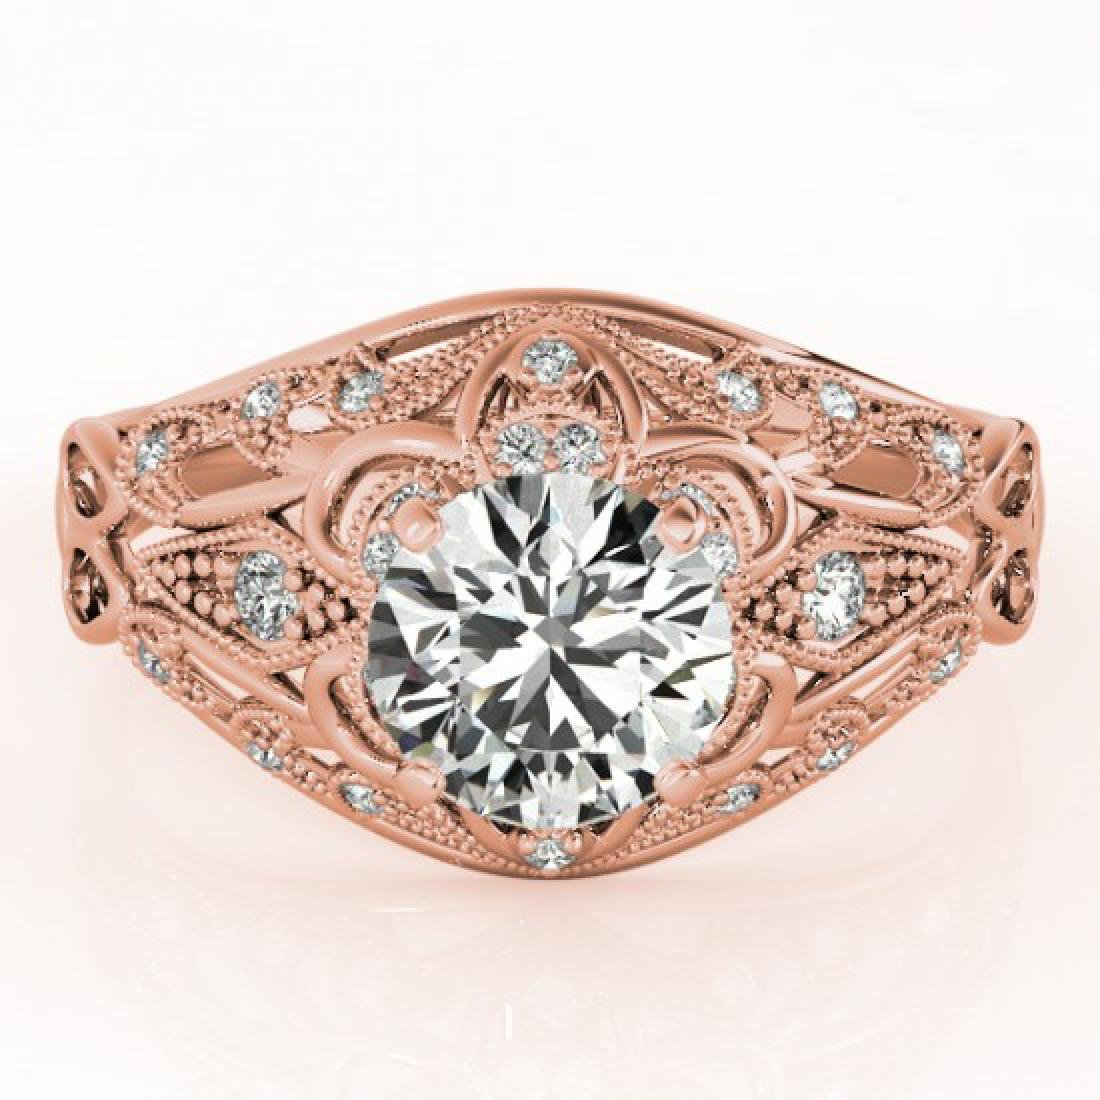 1.12 CTW Certified VS/SI Diamond Solitaire Antique Ring